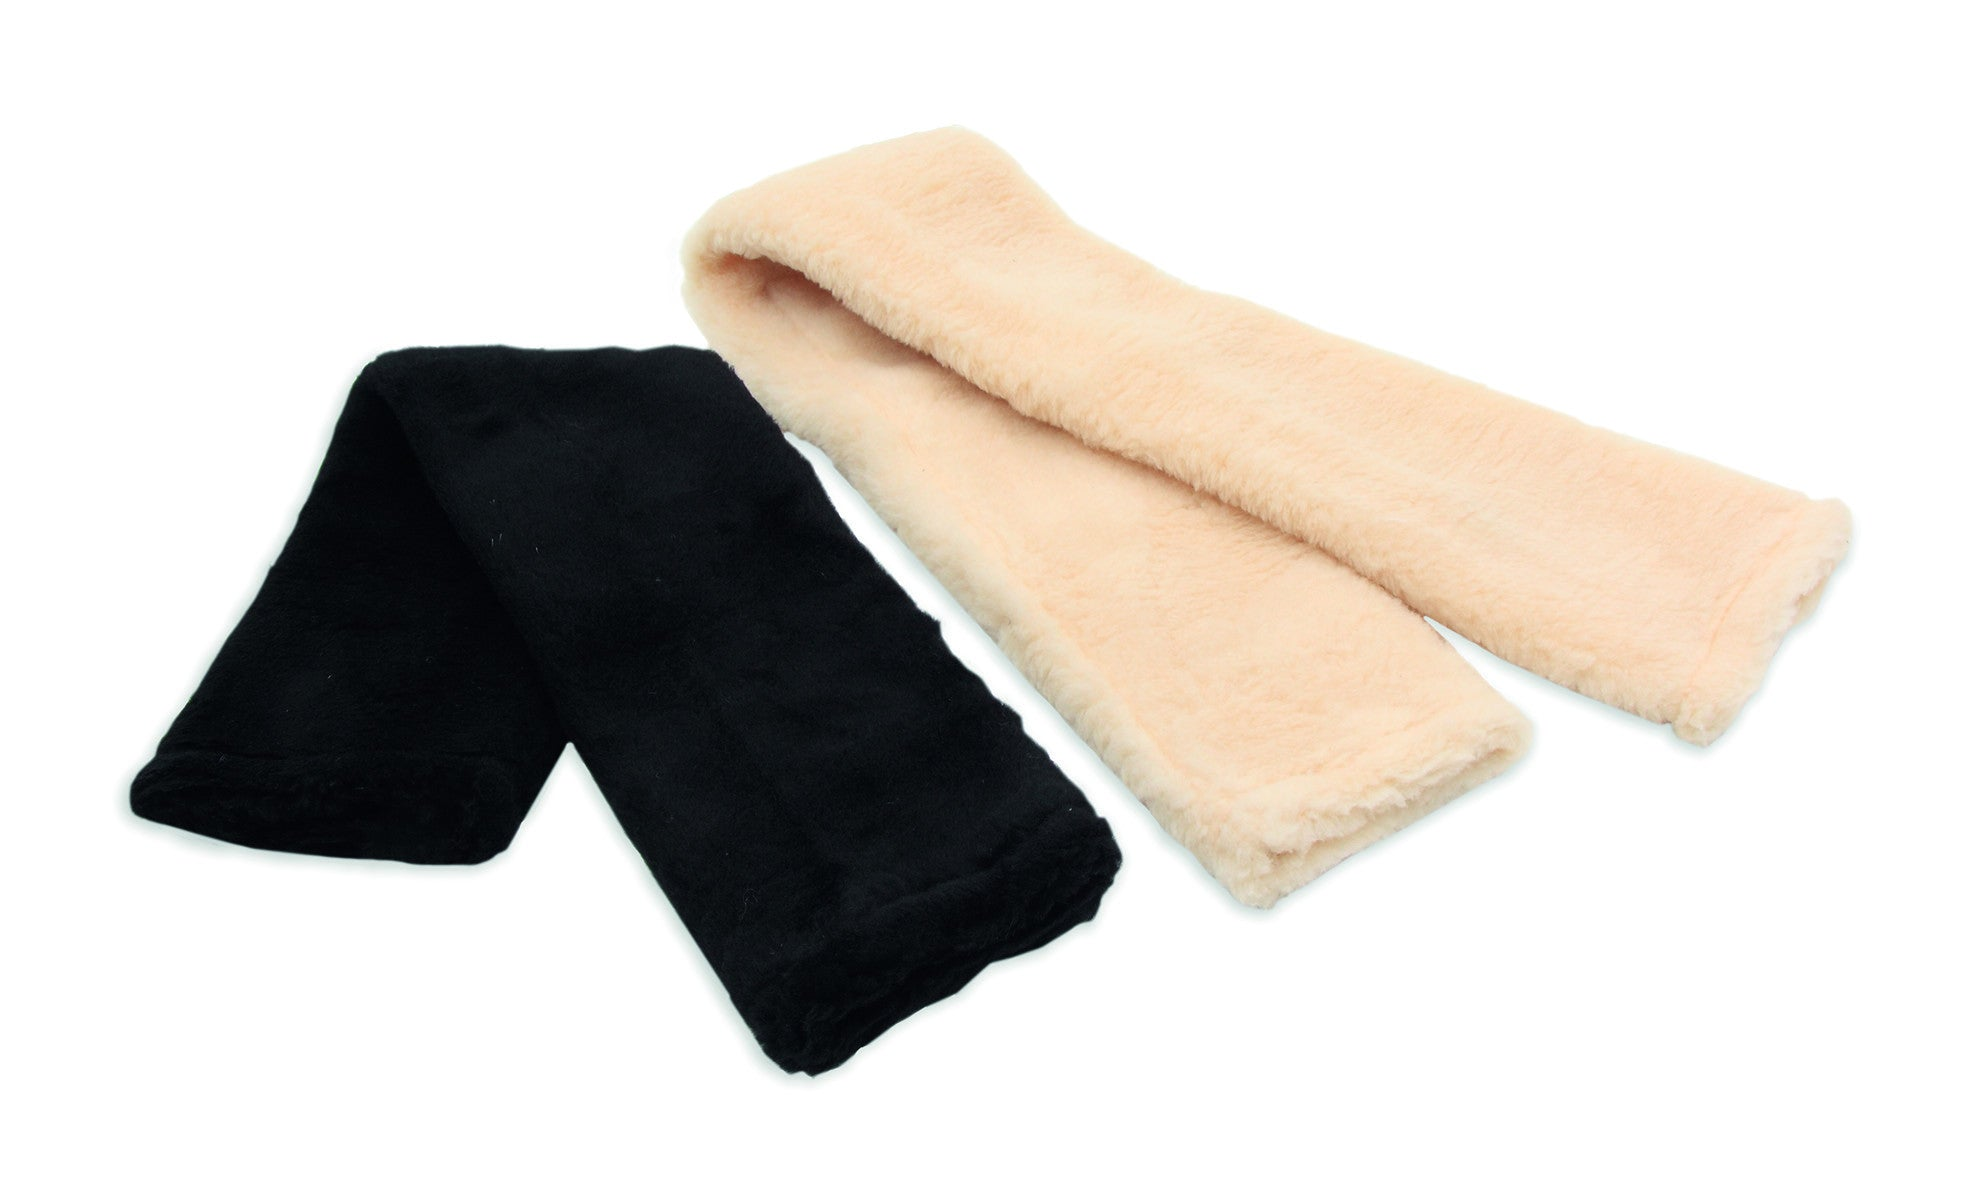 Acrilan Girth Sleeve - Long